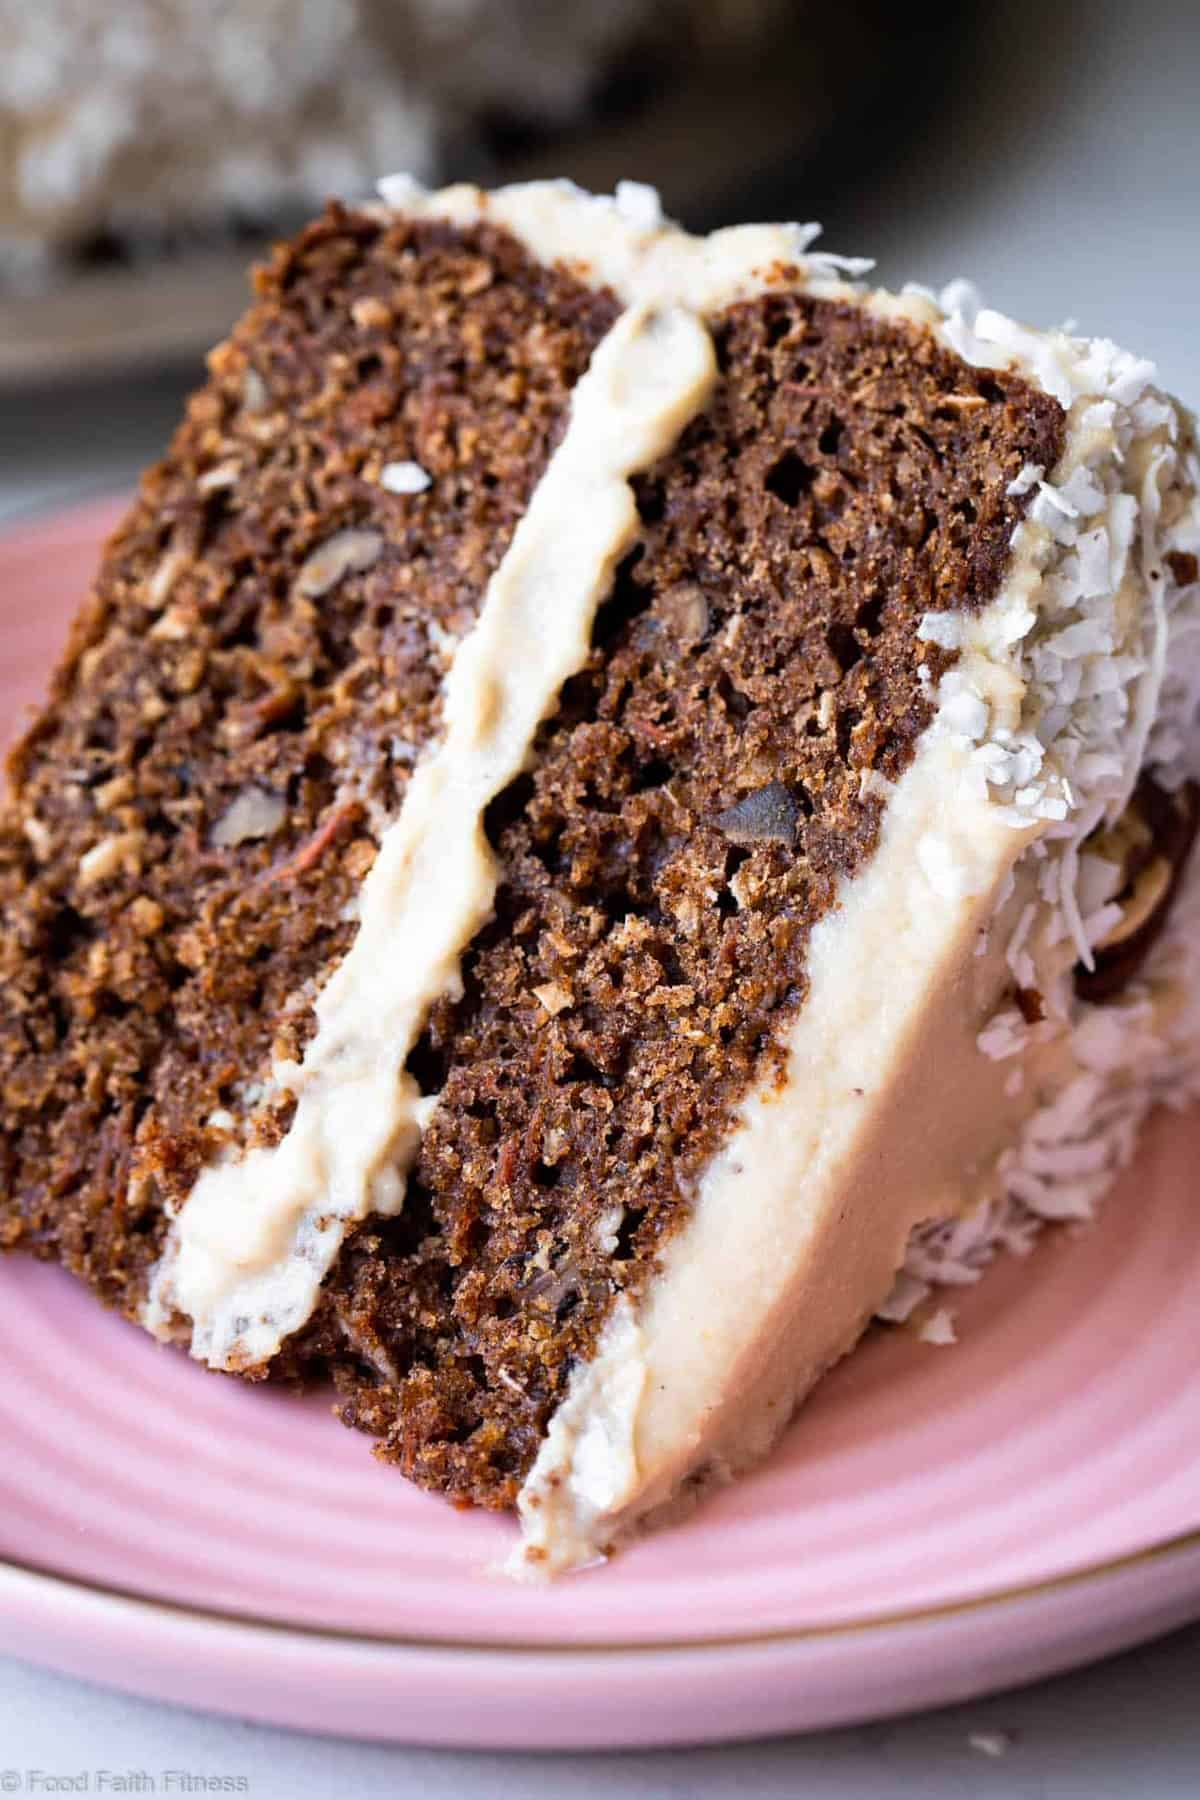 Paleo Carrot Cake - This dairy, grain and gluten free, Paleo Carrot Cake with Almond Flour has a luscious cashew